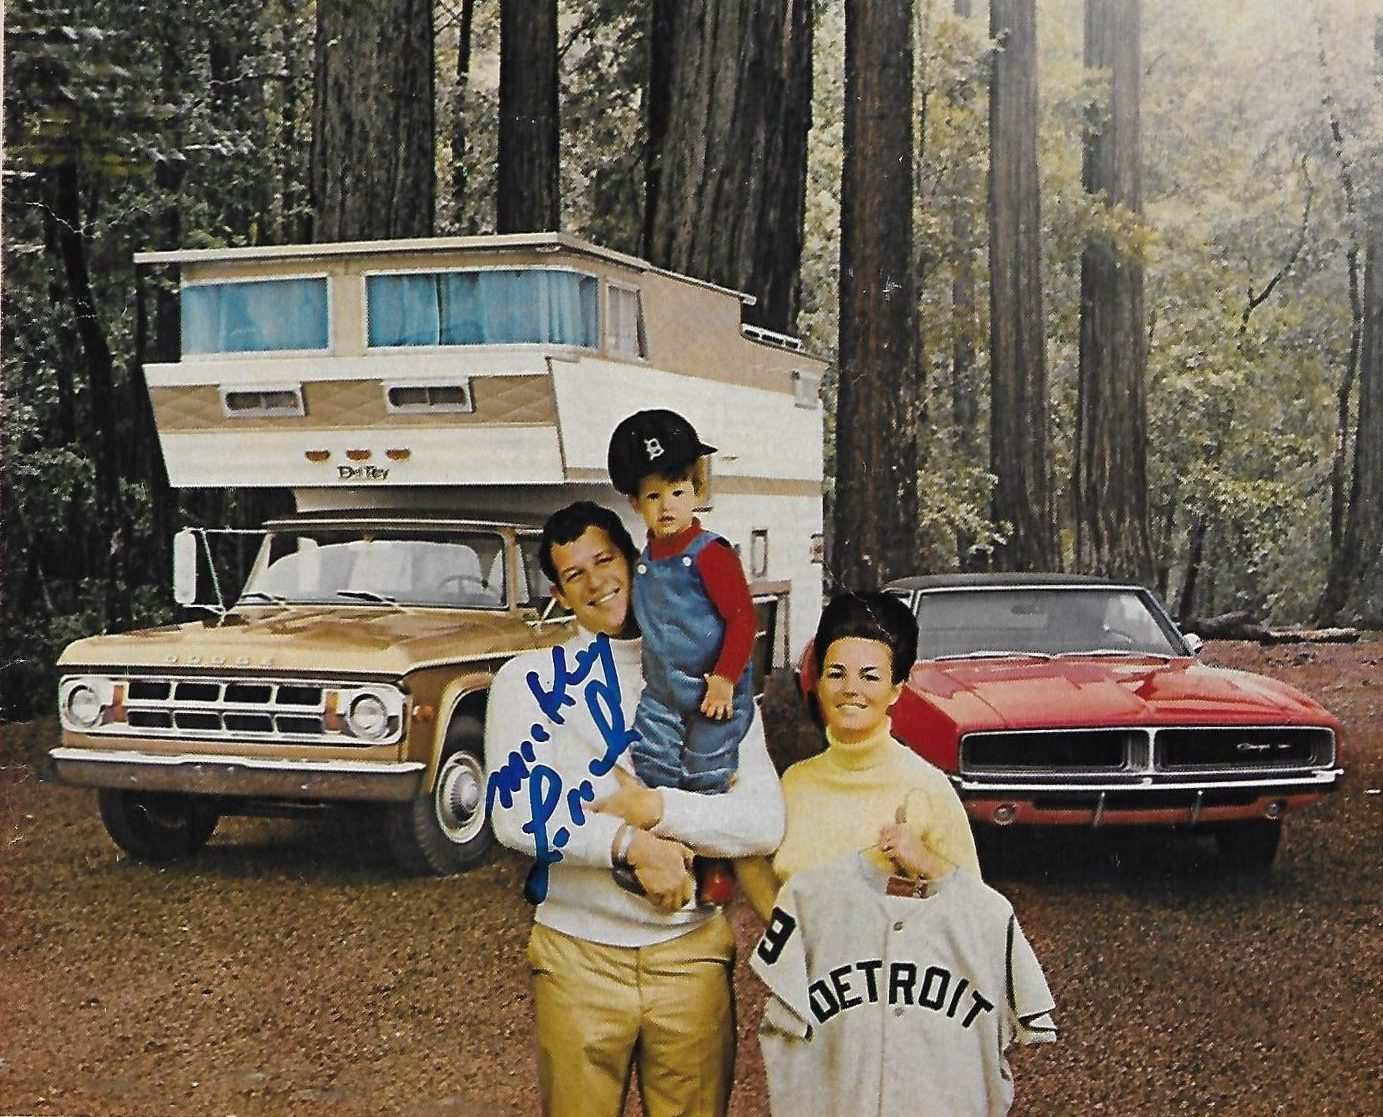 After the 1968 World Series, Dodge sent MVP Lolich on a 10-day camping trip—or so it seemed